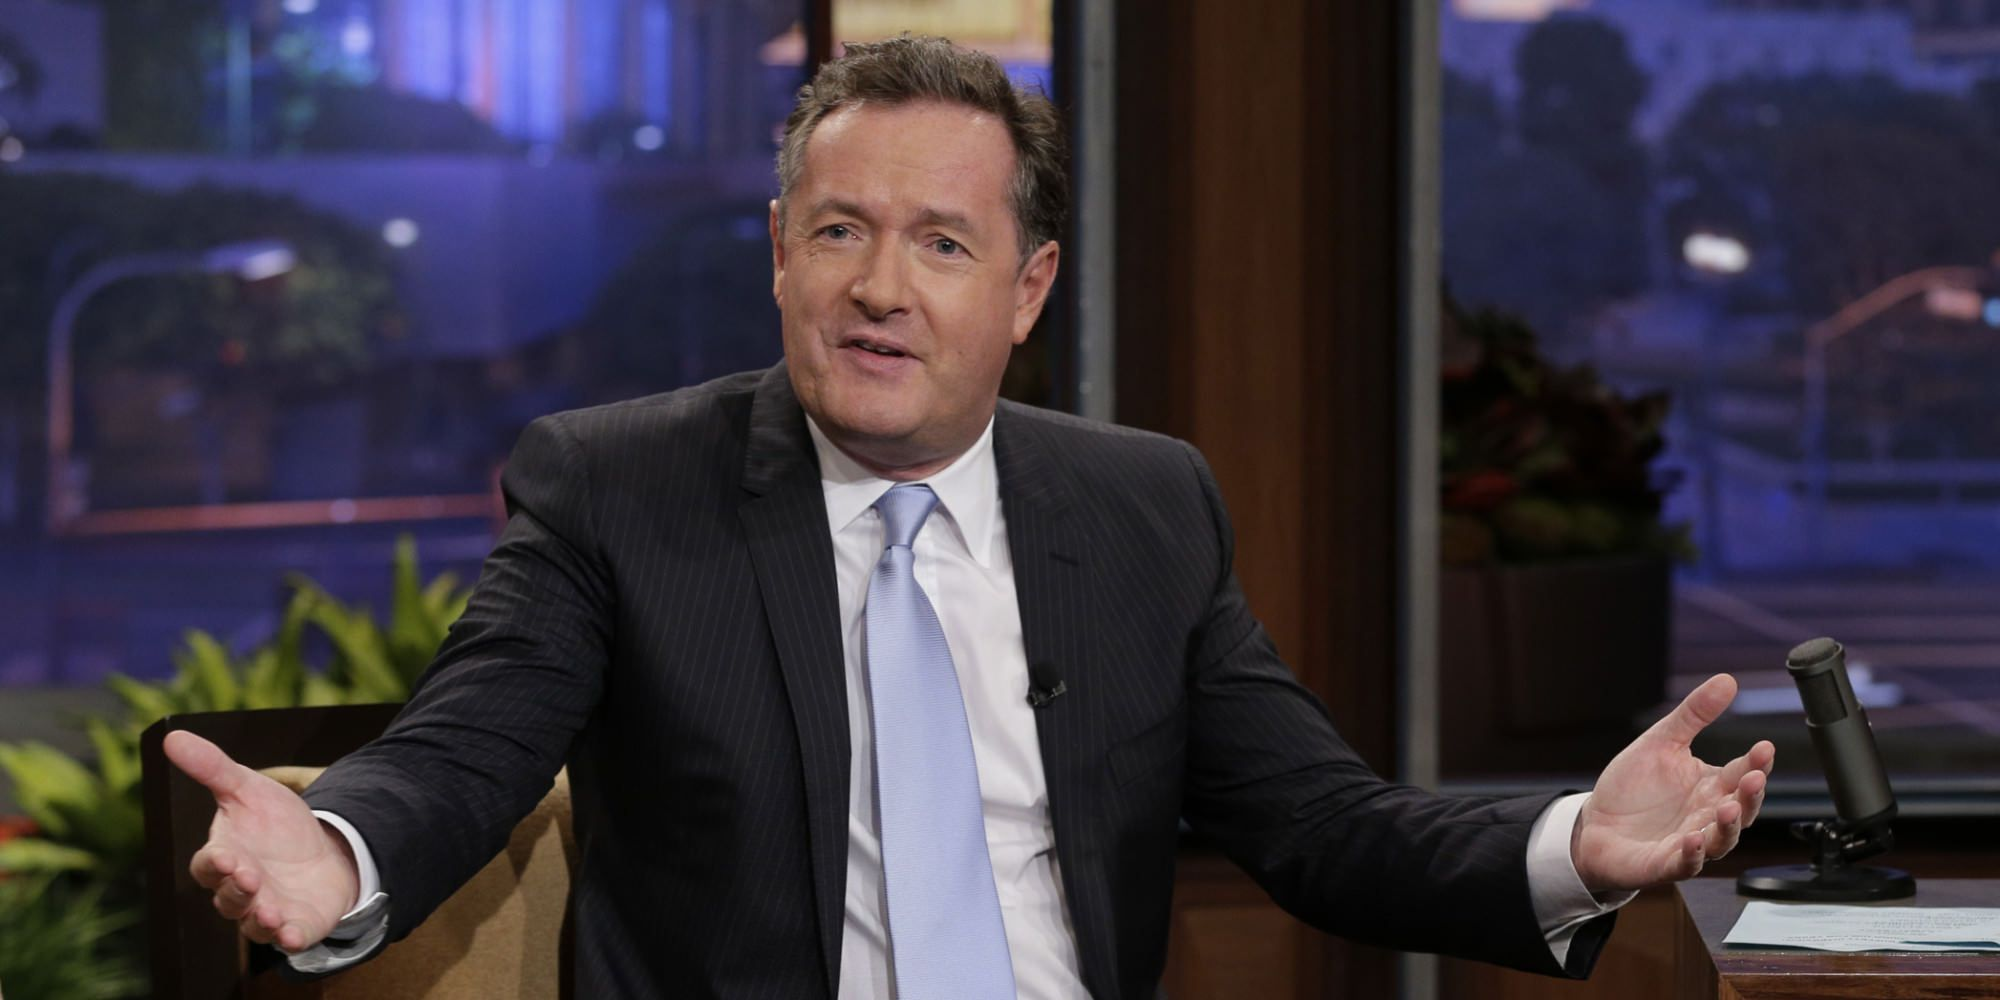 Piers Morgan reacts to 2-1 defeat to Newcastle on Sunday